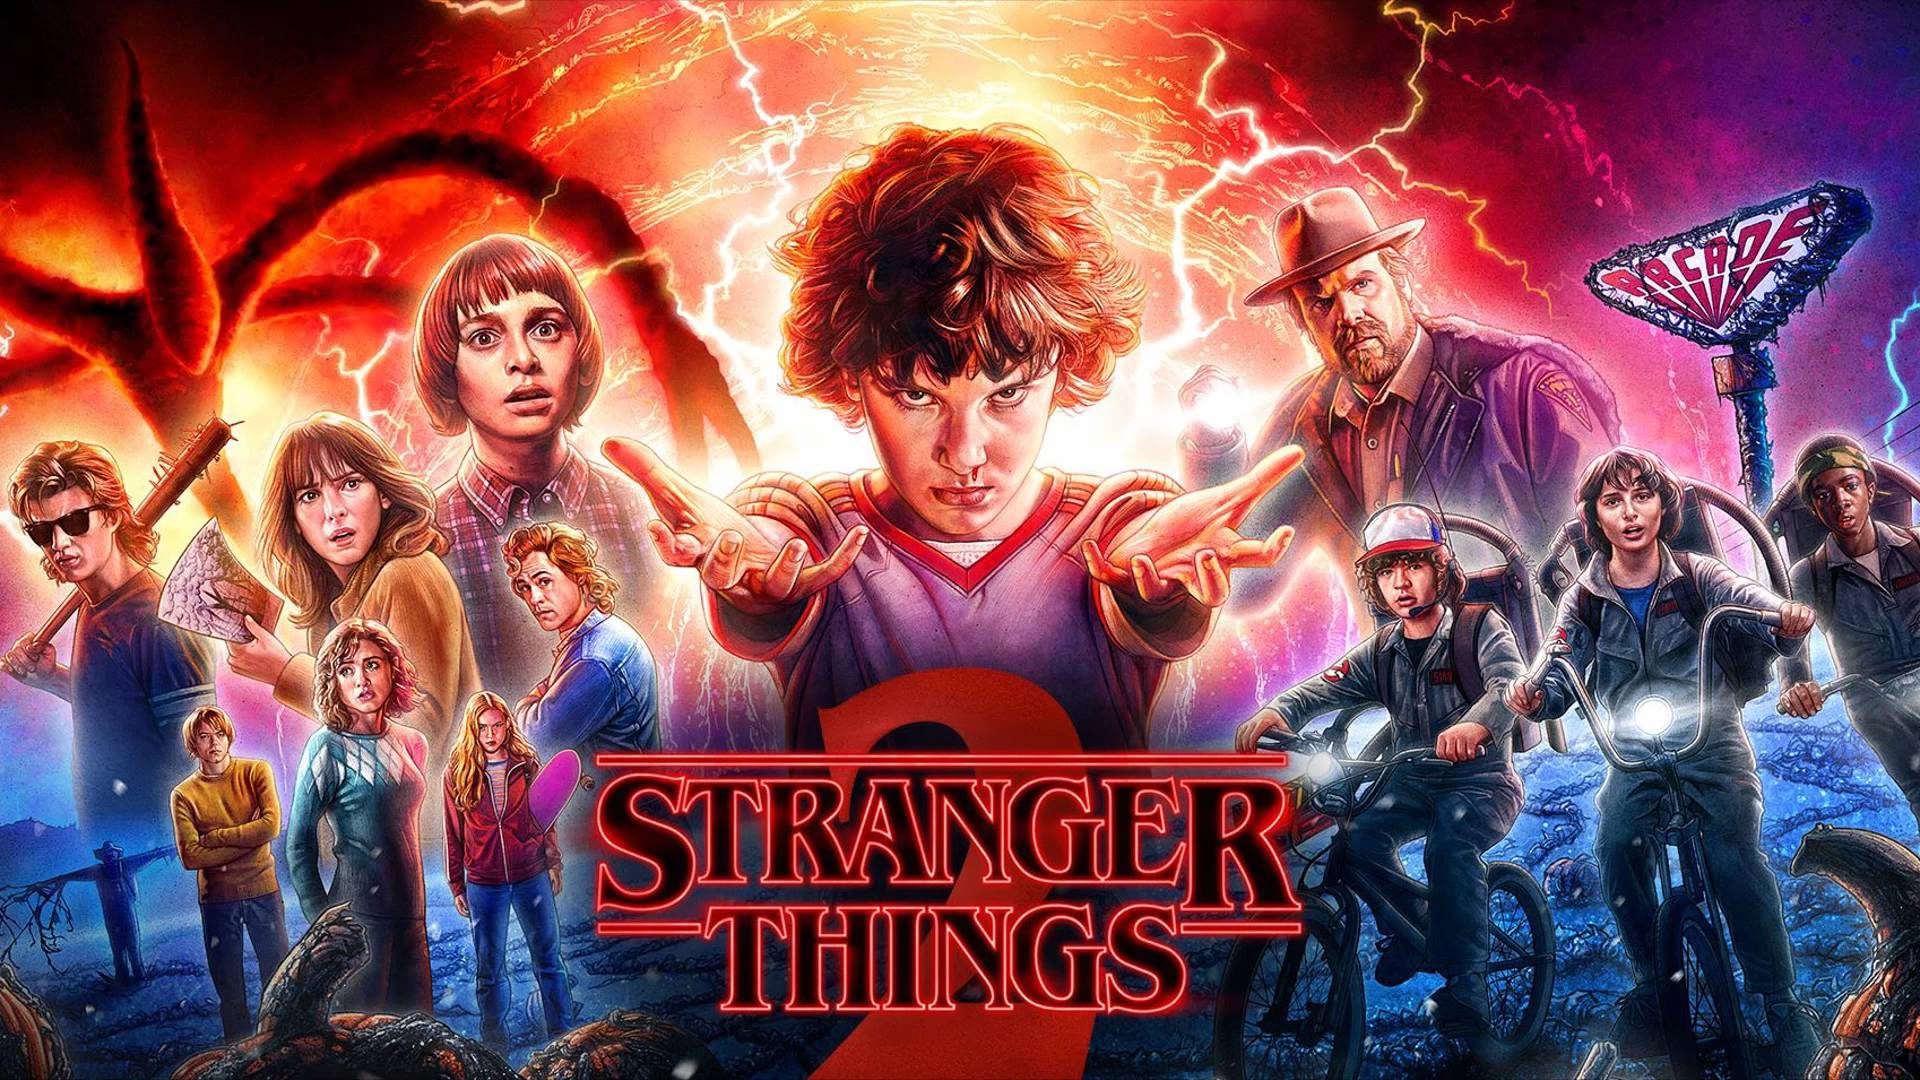 Stranger things wallpaper for Fondo de pantalla stranger things